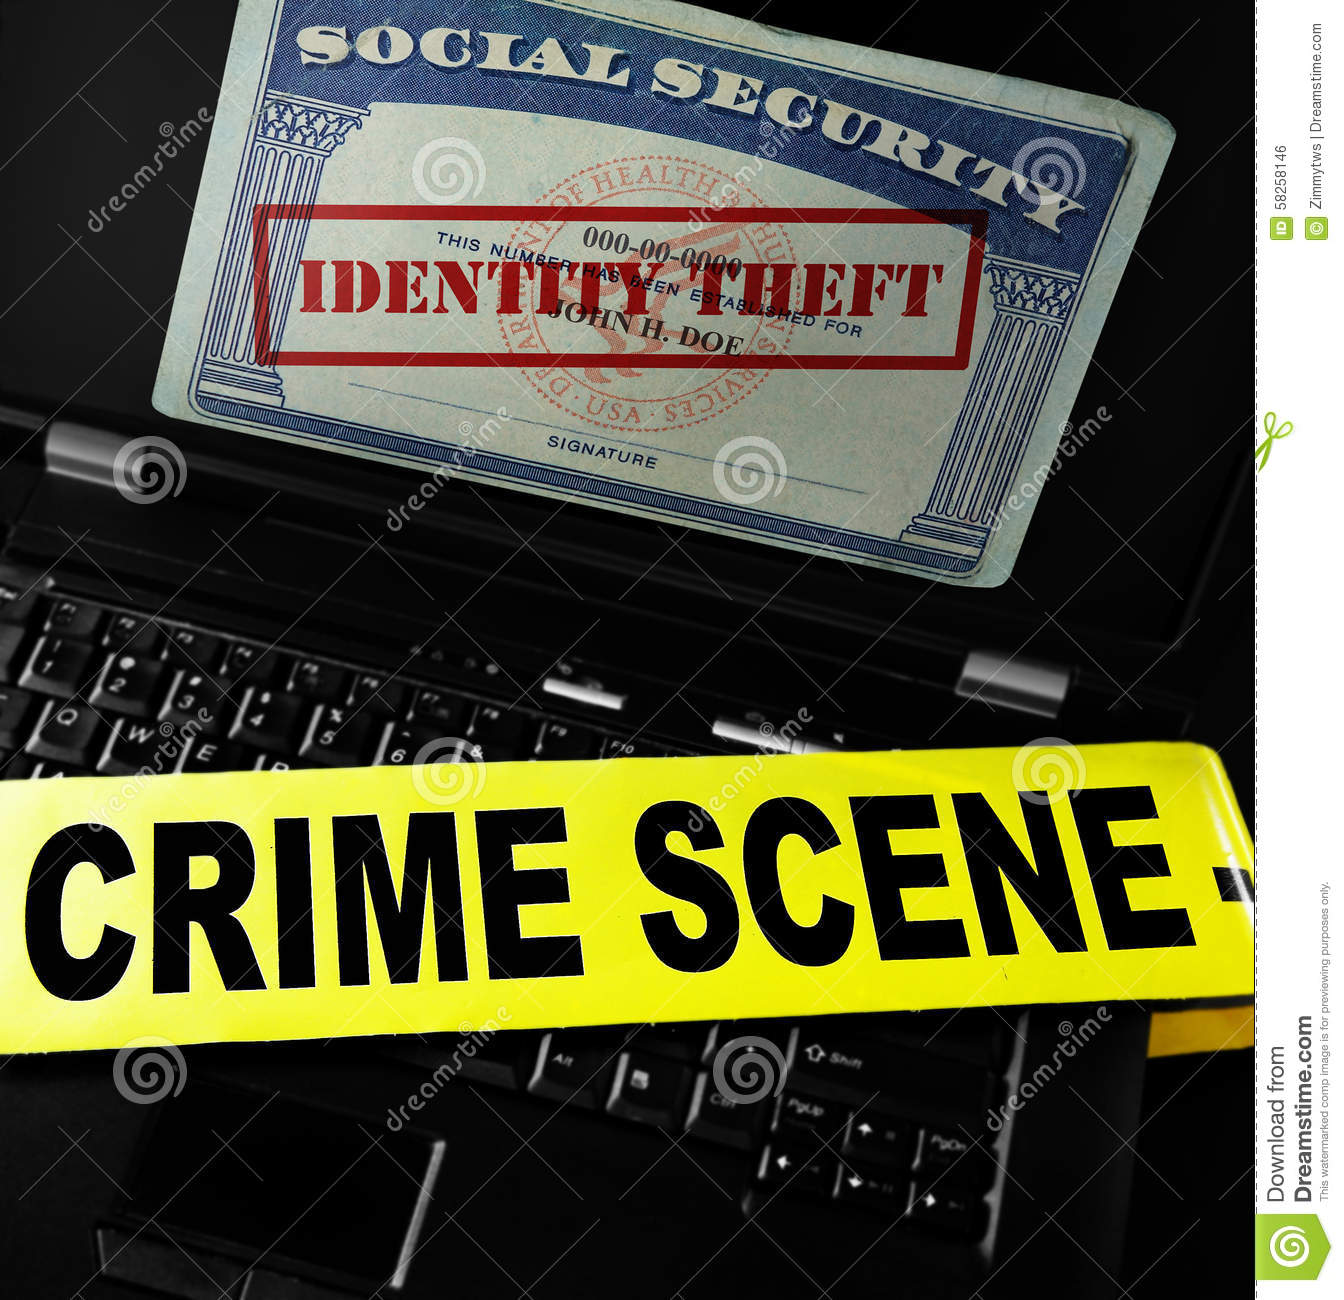 the issues of security and privacy on the internet and the crime of identity theft What are identity theft and identity fraud identity theft and identity fraud are terms used to refer to all types of crime in which someone wrongfully obtains and uses another person's personal data in some way that involves fraud or deception, typically for economic gain.